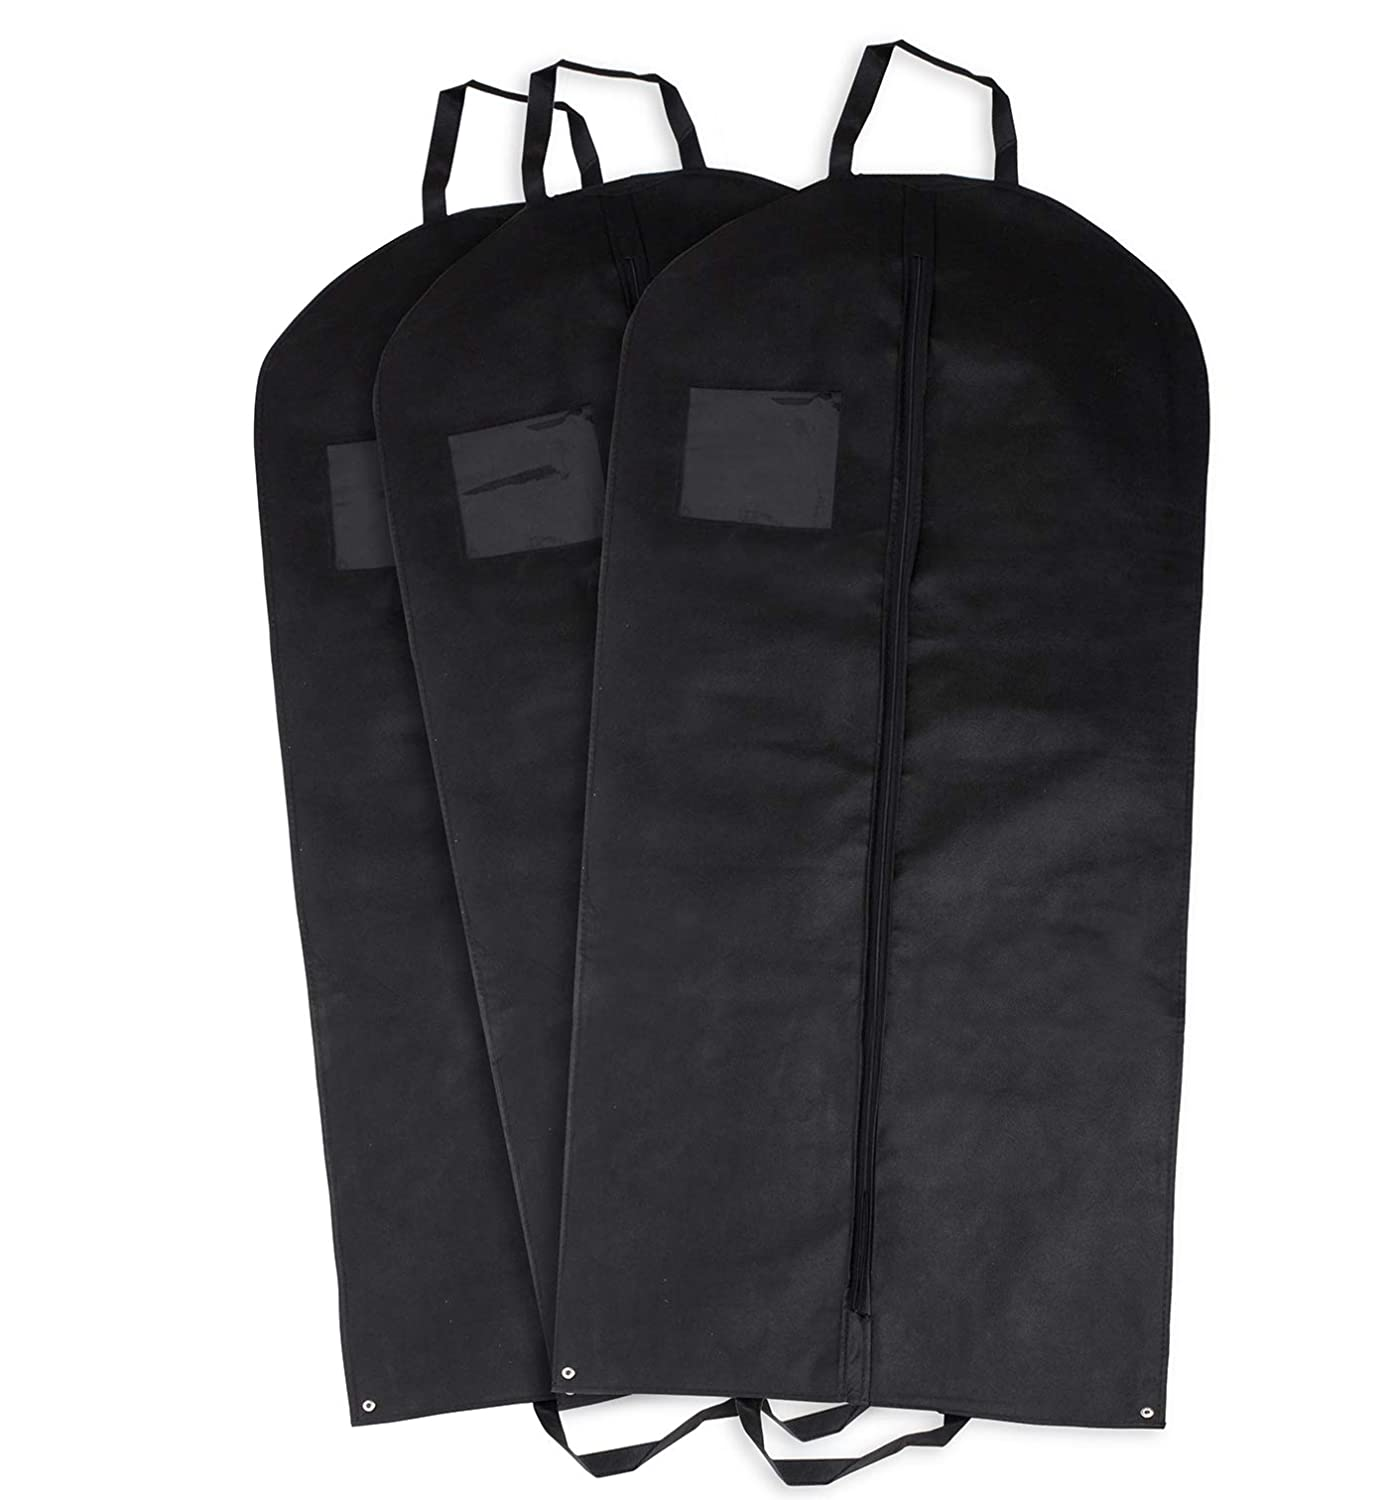 3 Garment Bags (Long) For Suits, Tuxedos, Dresses, or Gowns- 55'' Long w/Window By Pointed Designs